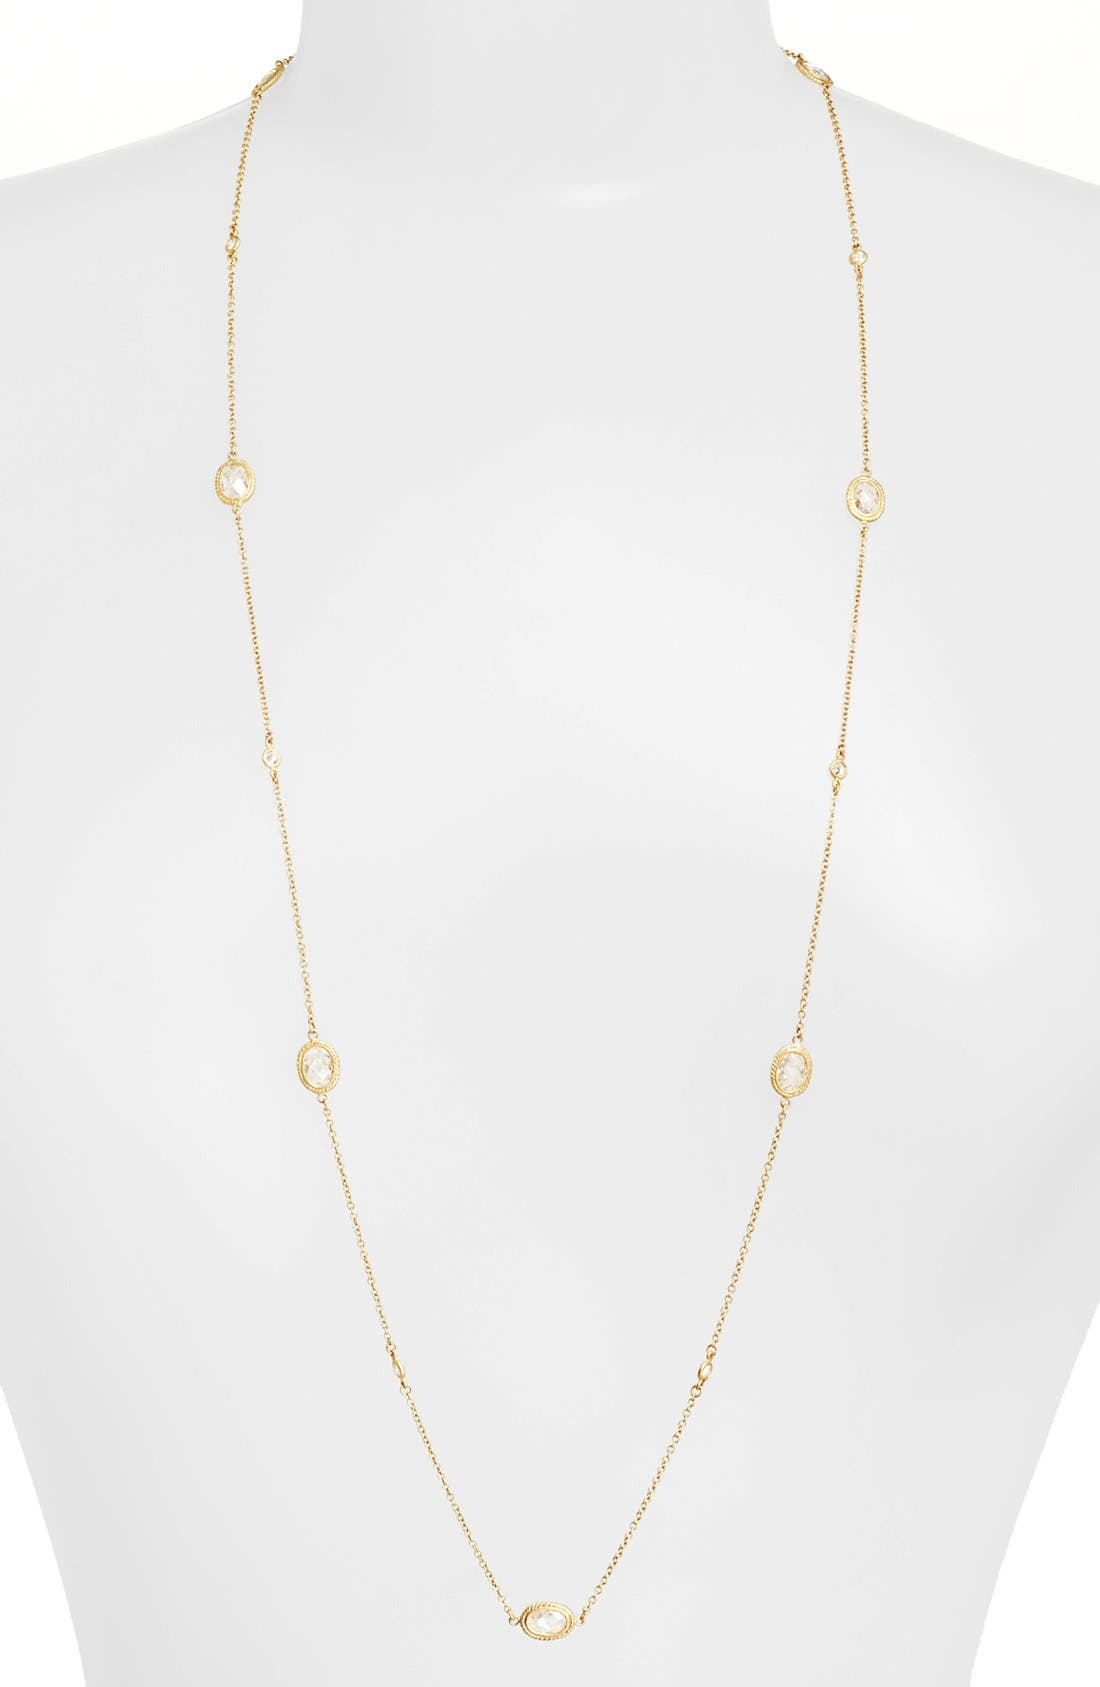 Main Image - FREIDA ROTHMAN 'Mercer' Raindrop Station Long Wrap Necklace